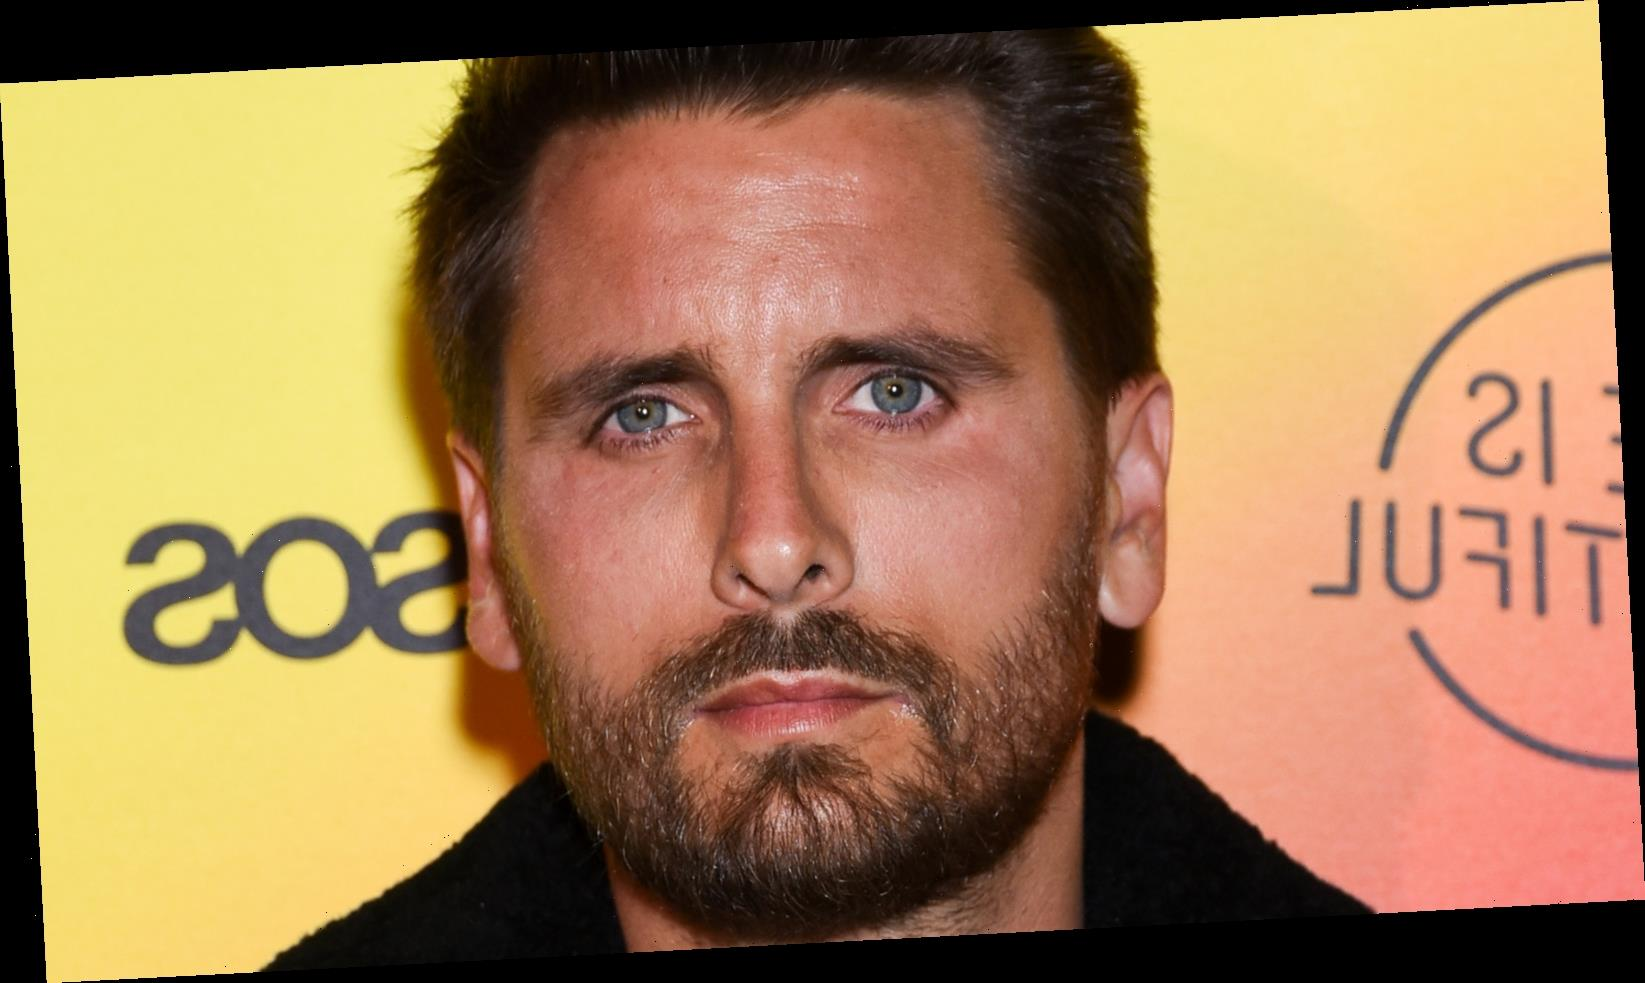 Scott Disick's New Look Is Turning Heads